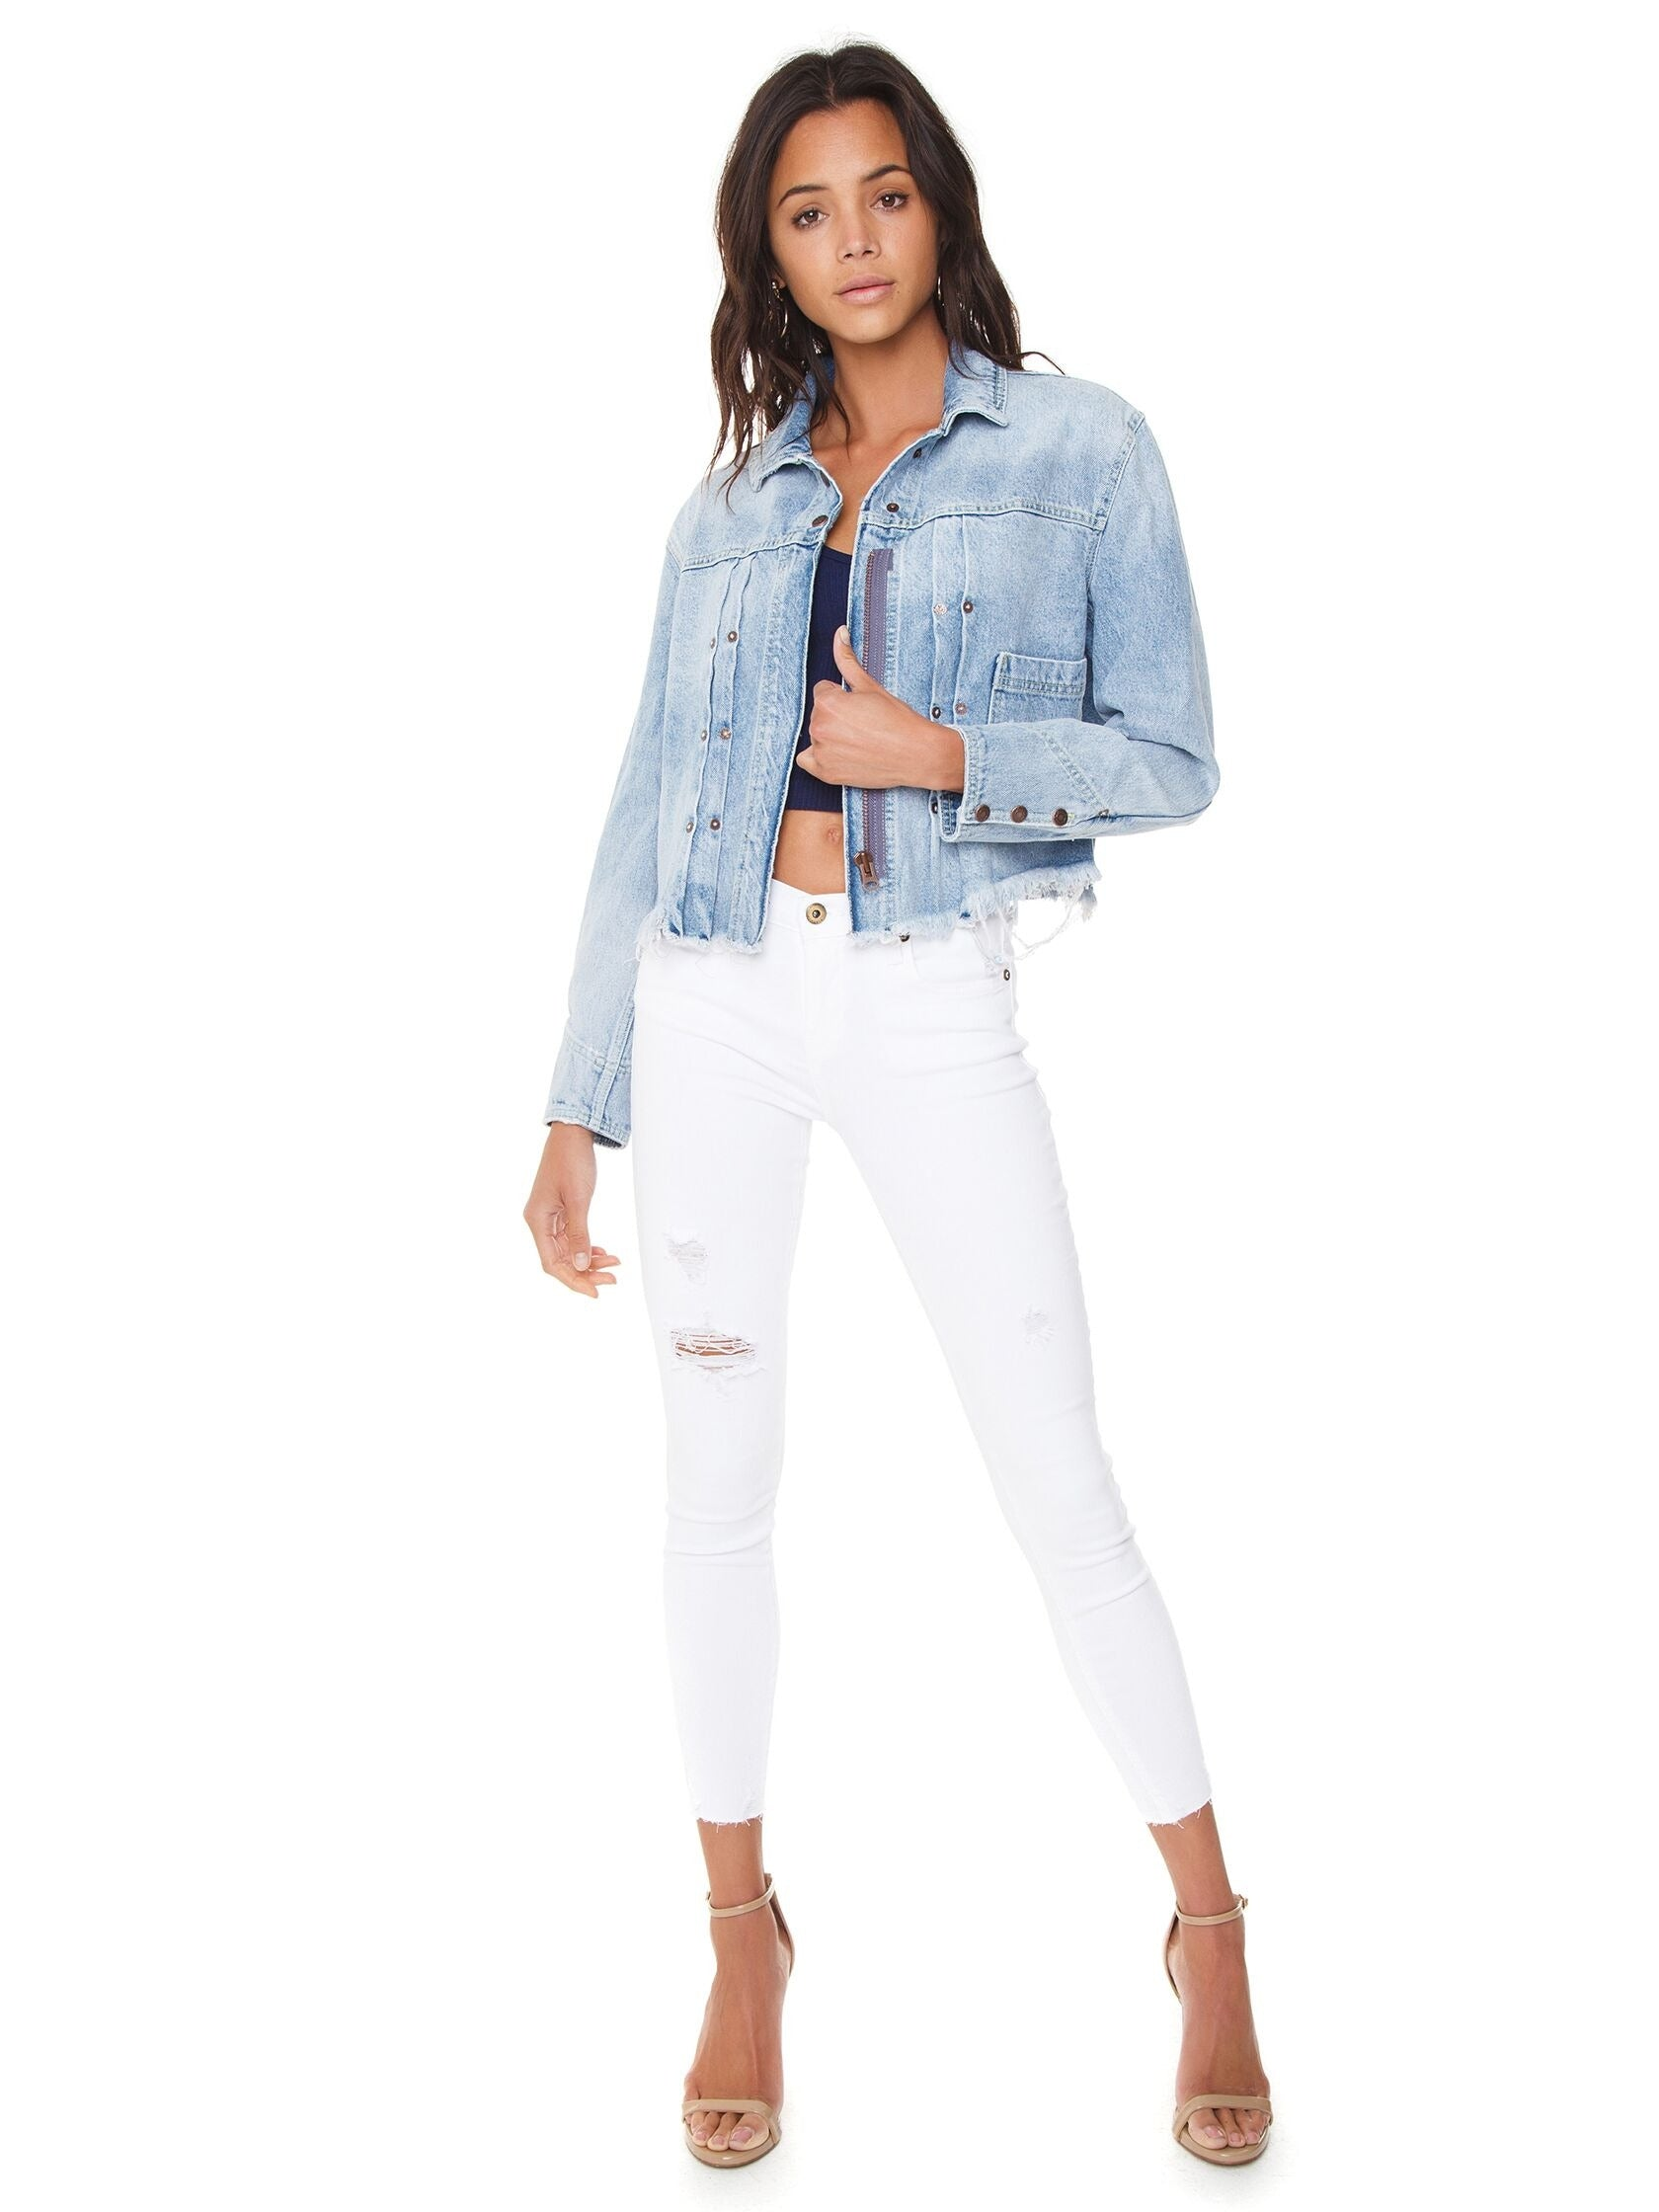 Girl wearing a jacket rental from Free People called Dillon Denim Jacket